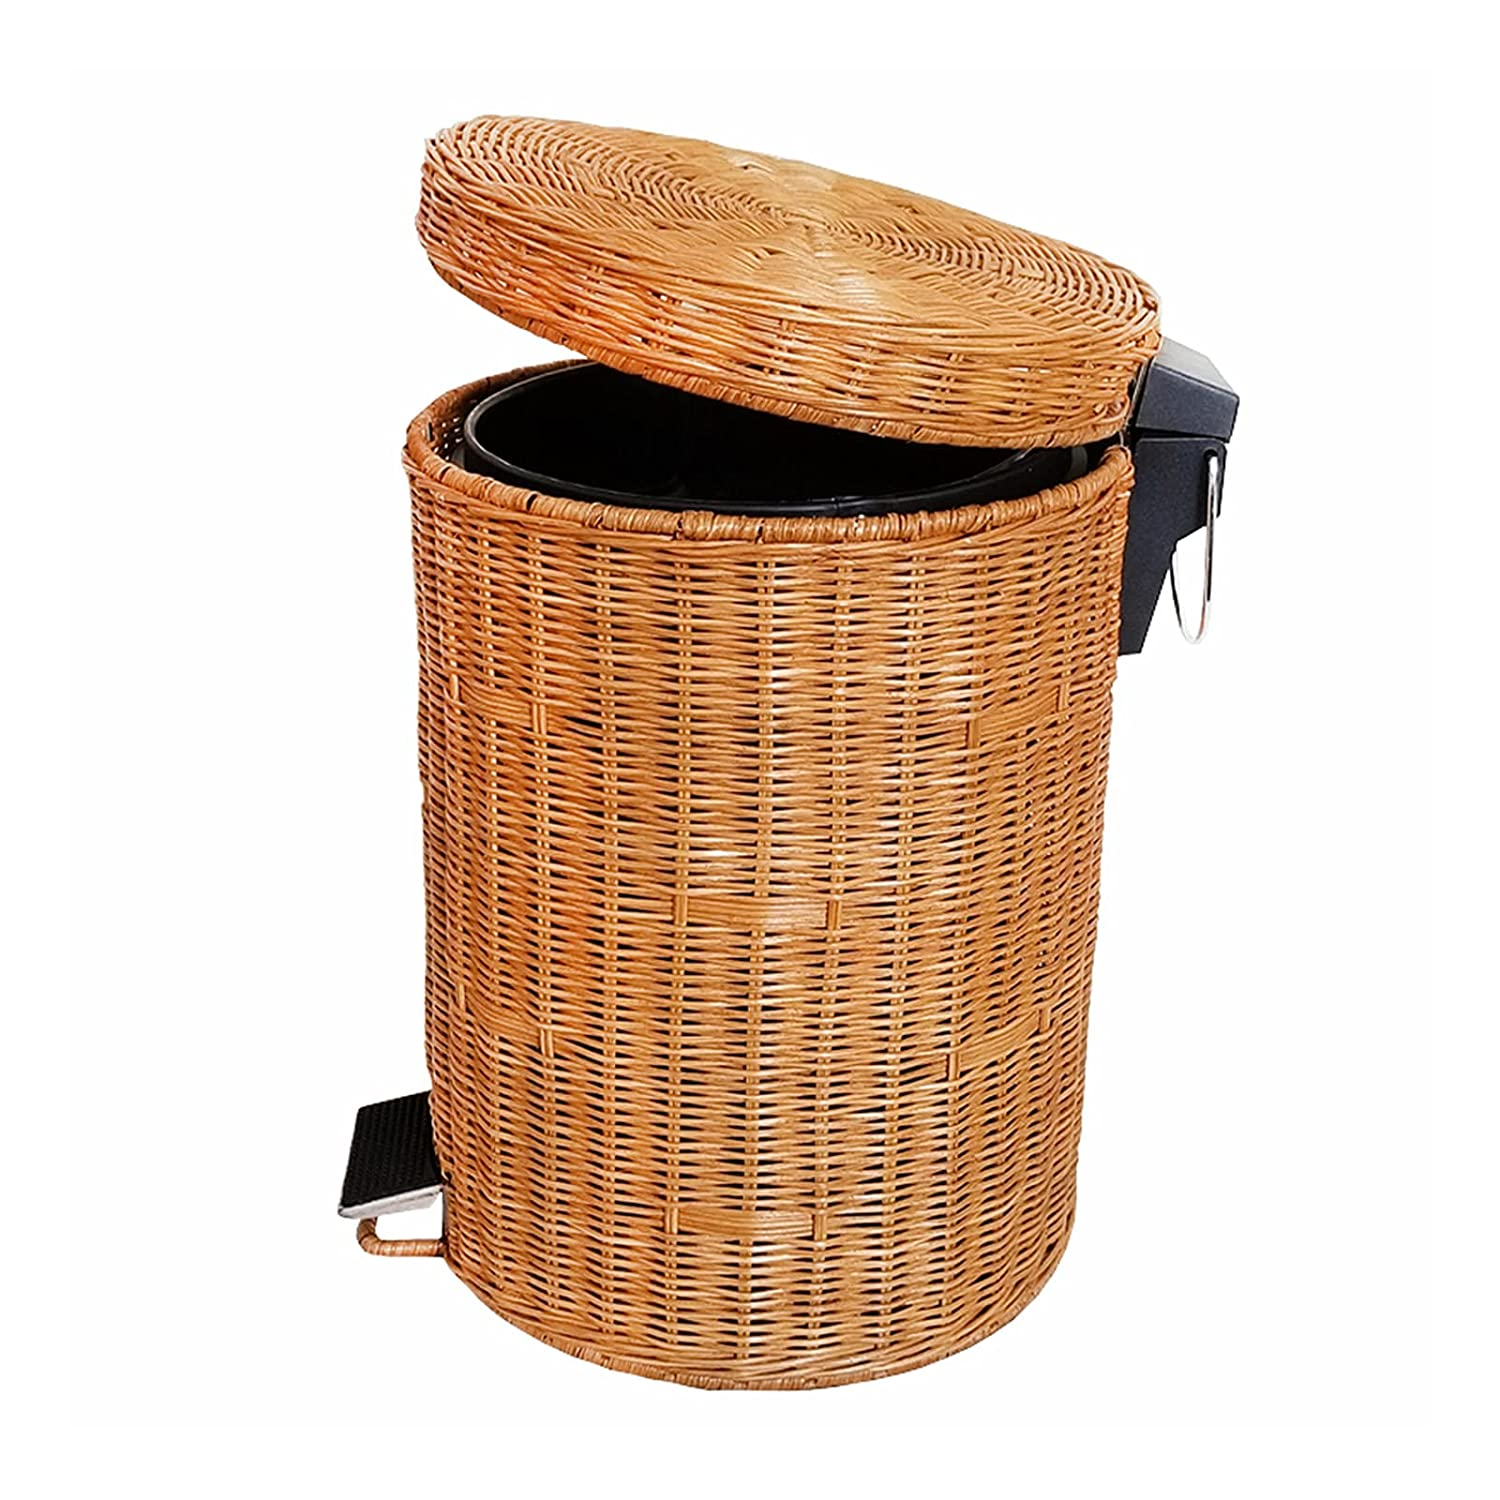 Rattan Wicker Trash Can with Lid, Round Hand Woven Waste Bins for Kitchens, Step Trash can Wastebasket for Home Bathrooms Office Patio Wrash can (Yellow, 1.3gallon(5L))